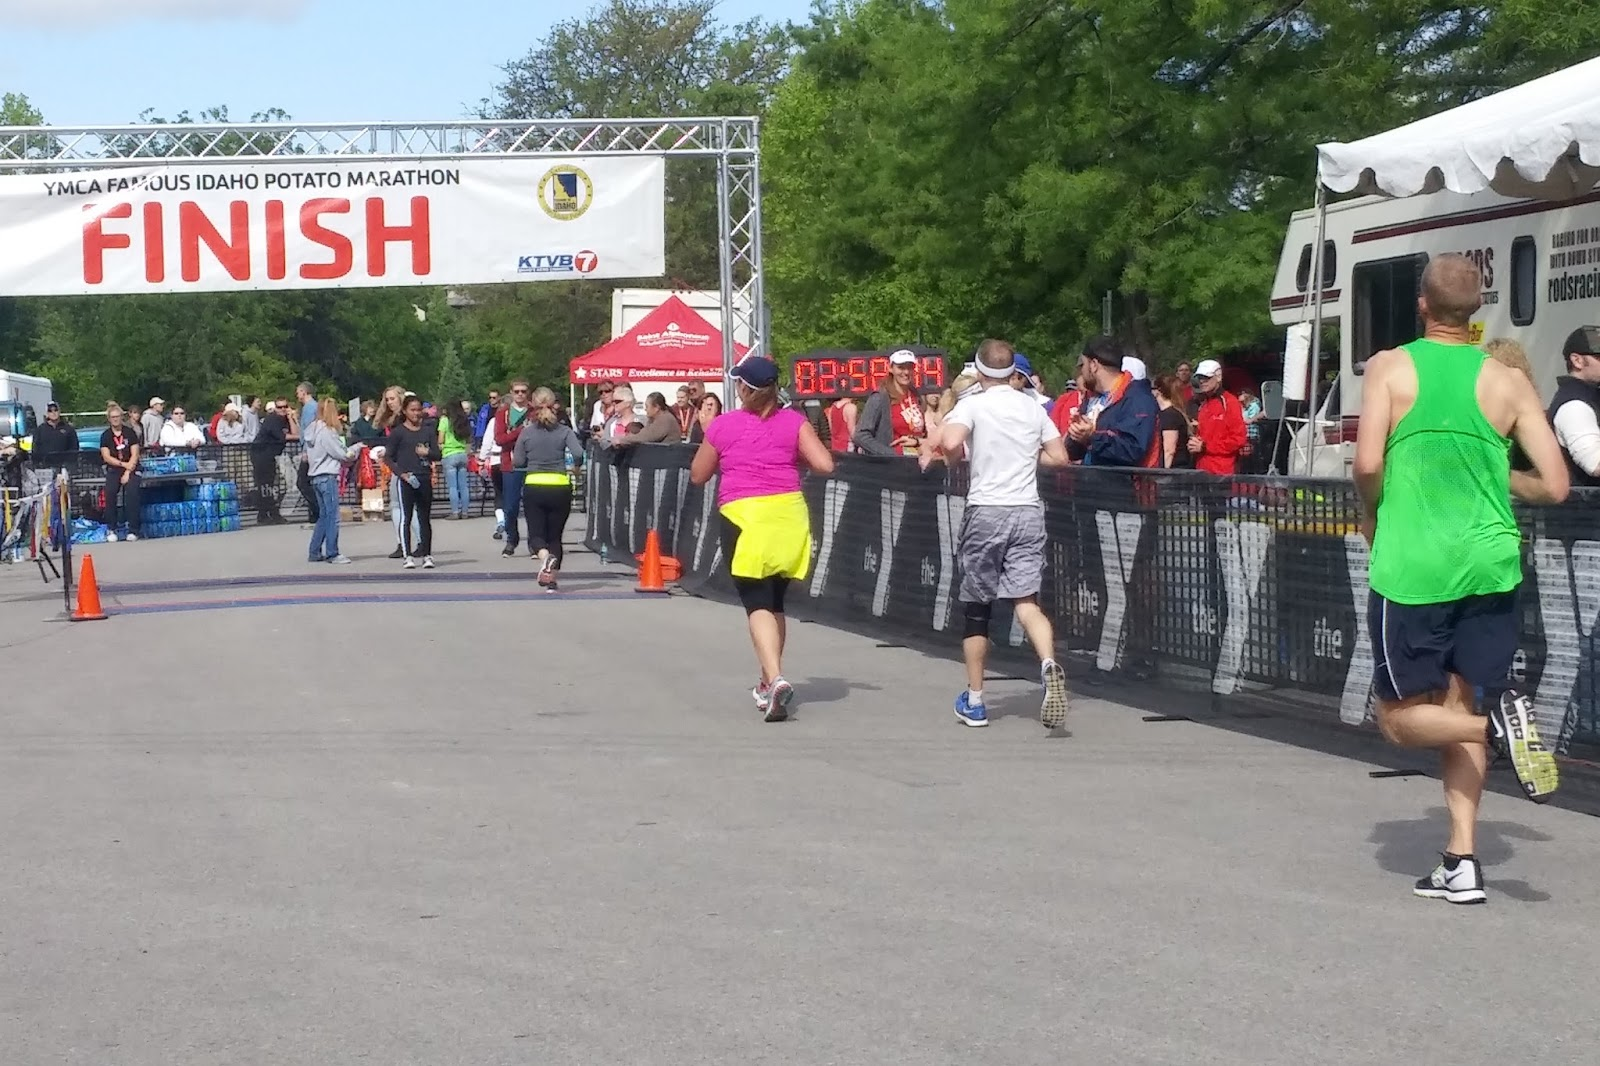 Approaching the finish line at the Famous Idaho Potato Marathon